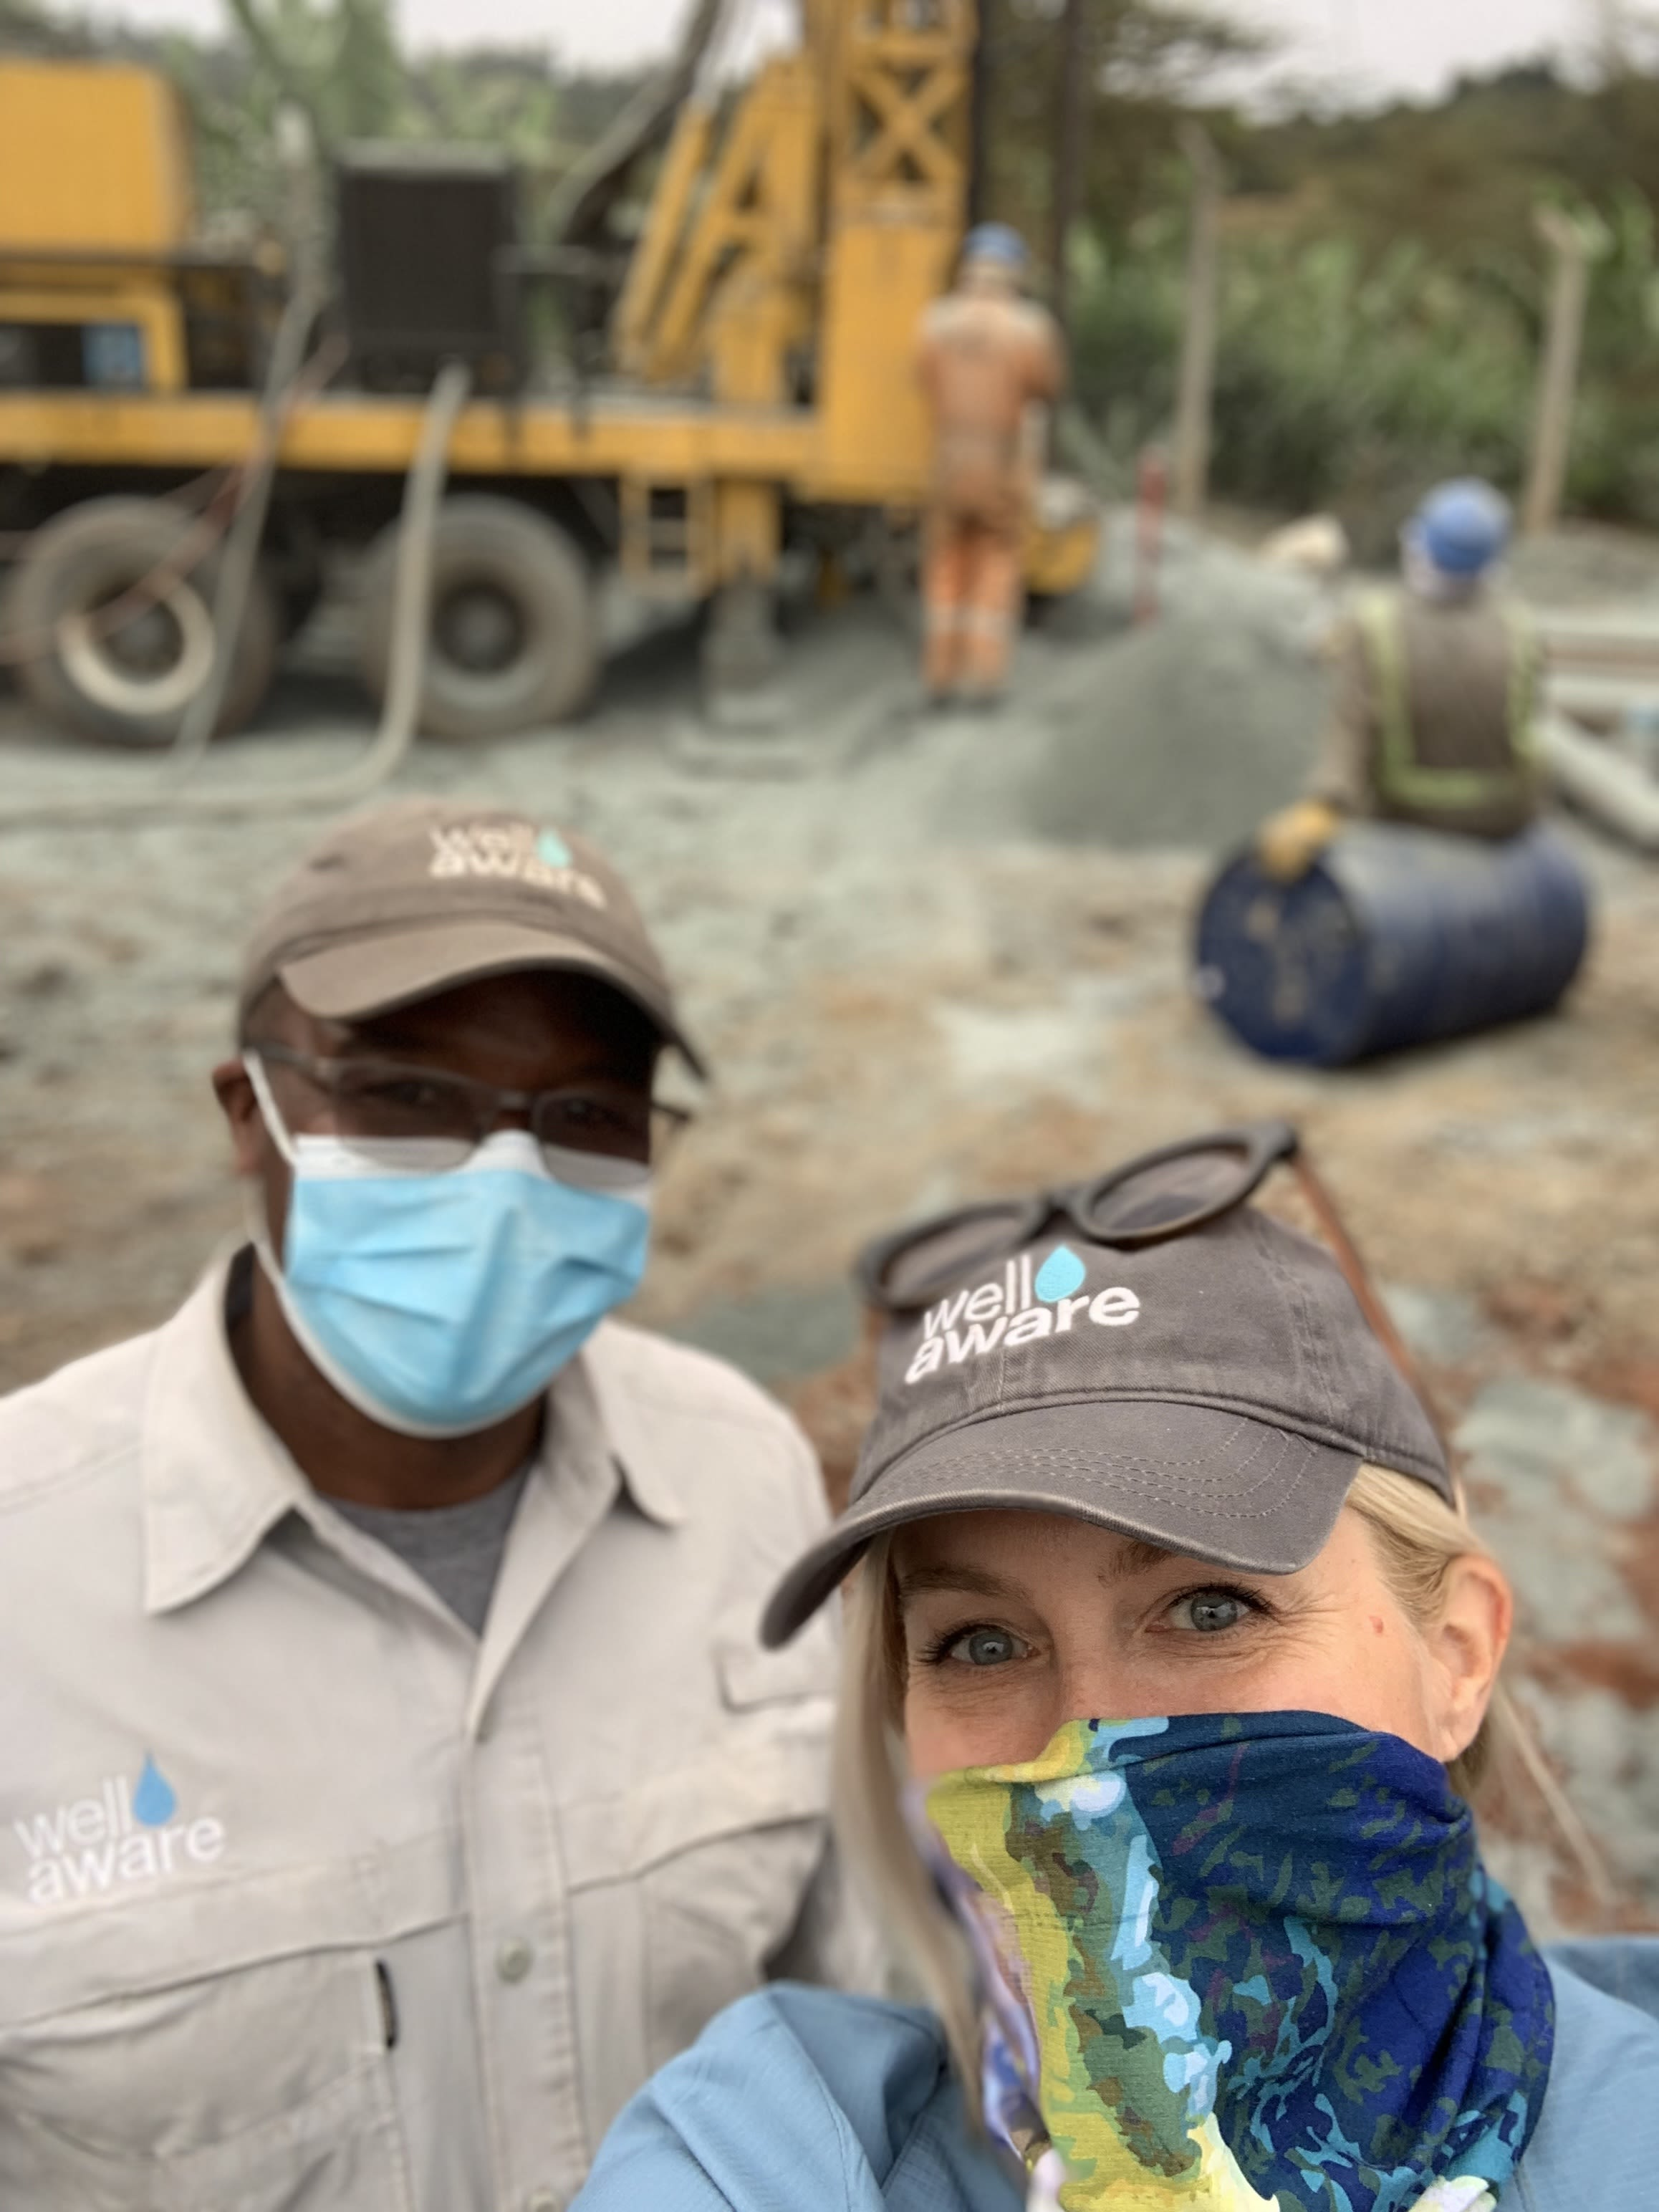 Well Aware founder, Sarah and Well Aware Project Manager, Mike, at the Kooi, Kenya Drill Site